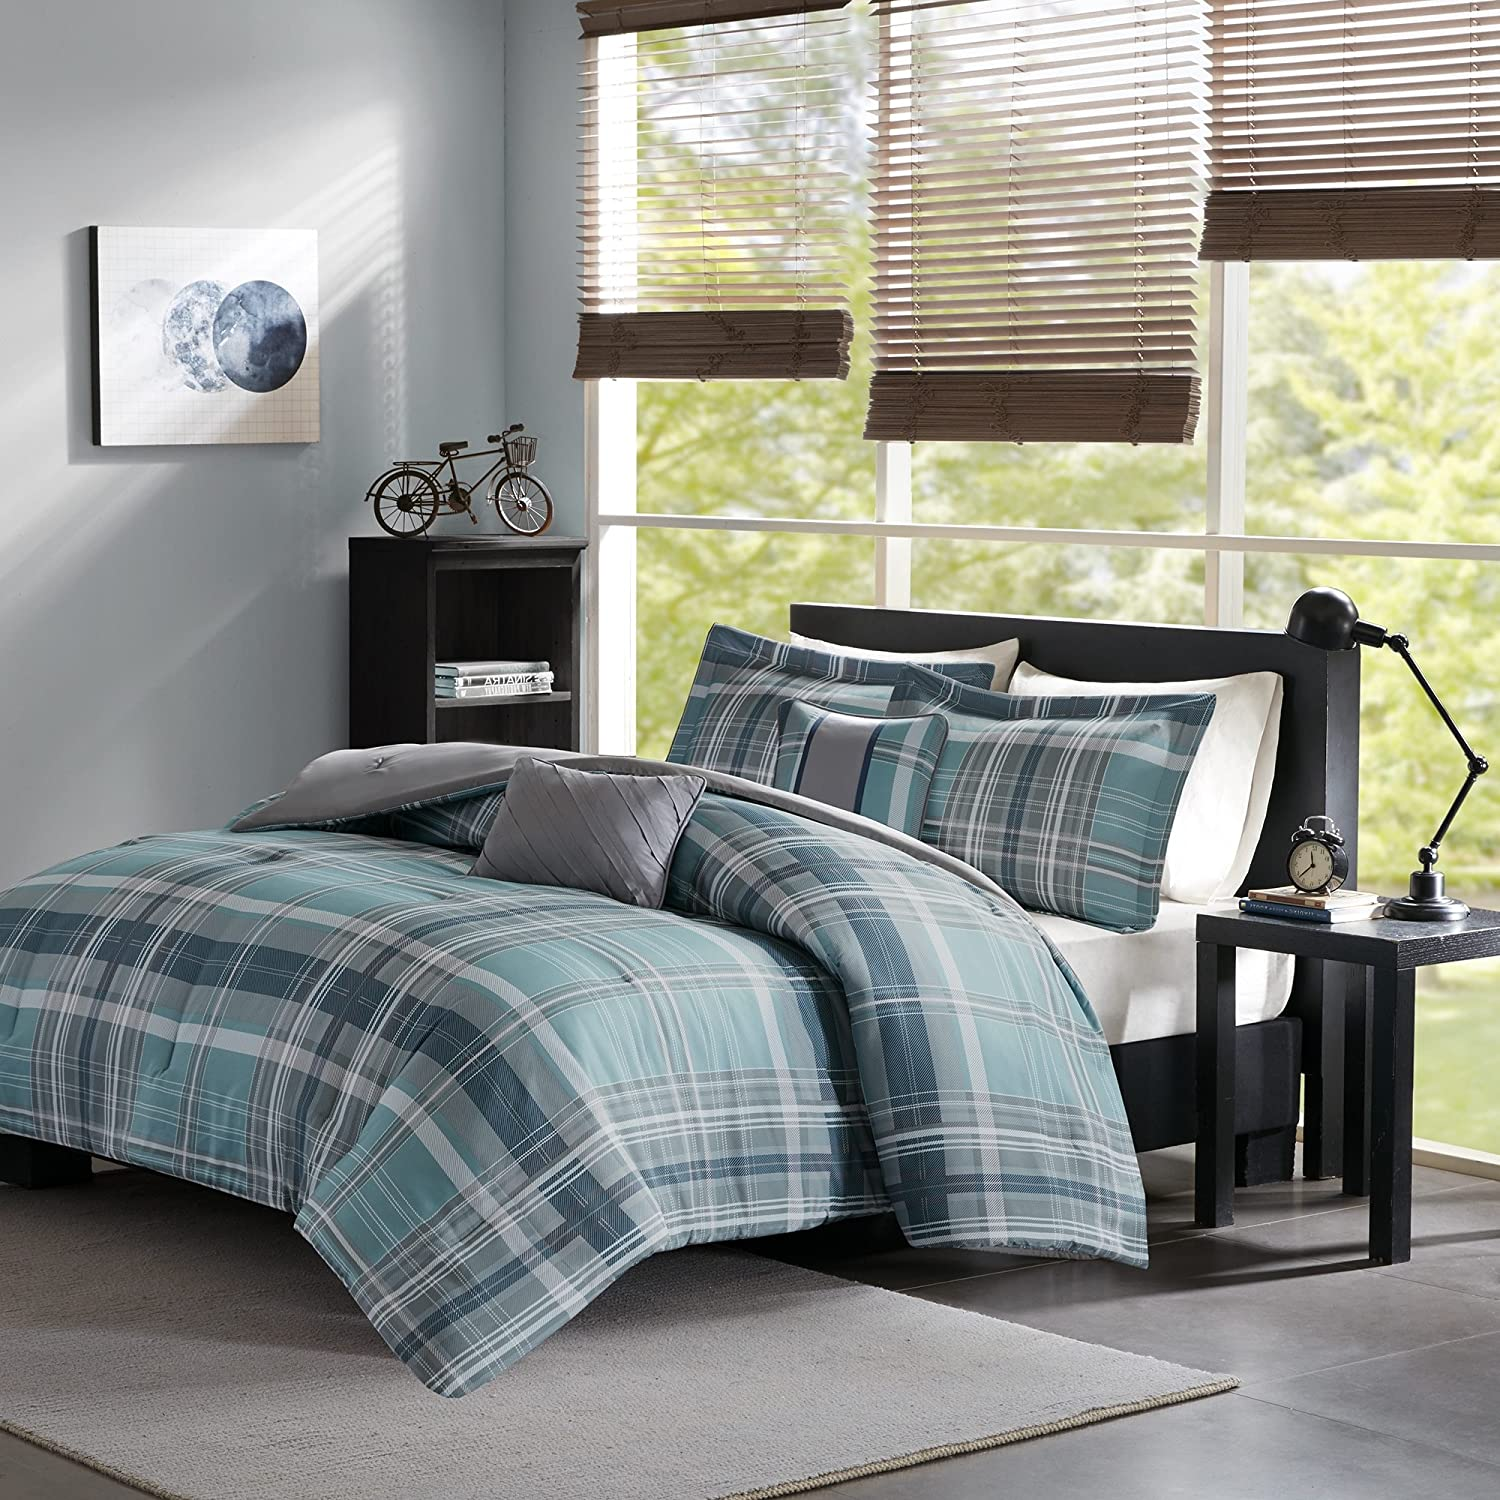 3 Piece Grey Teal Blue Green Madras Plaid Quilt Full Queen Set, All Over Patchwork Checkered Bedding, Tartan Check Patch Work Lodge Cabin Themed, Country Woven Pattern, Gray Turquoise